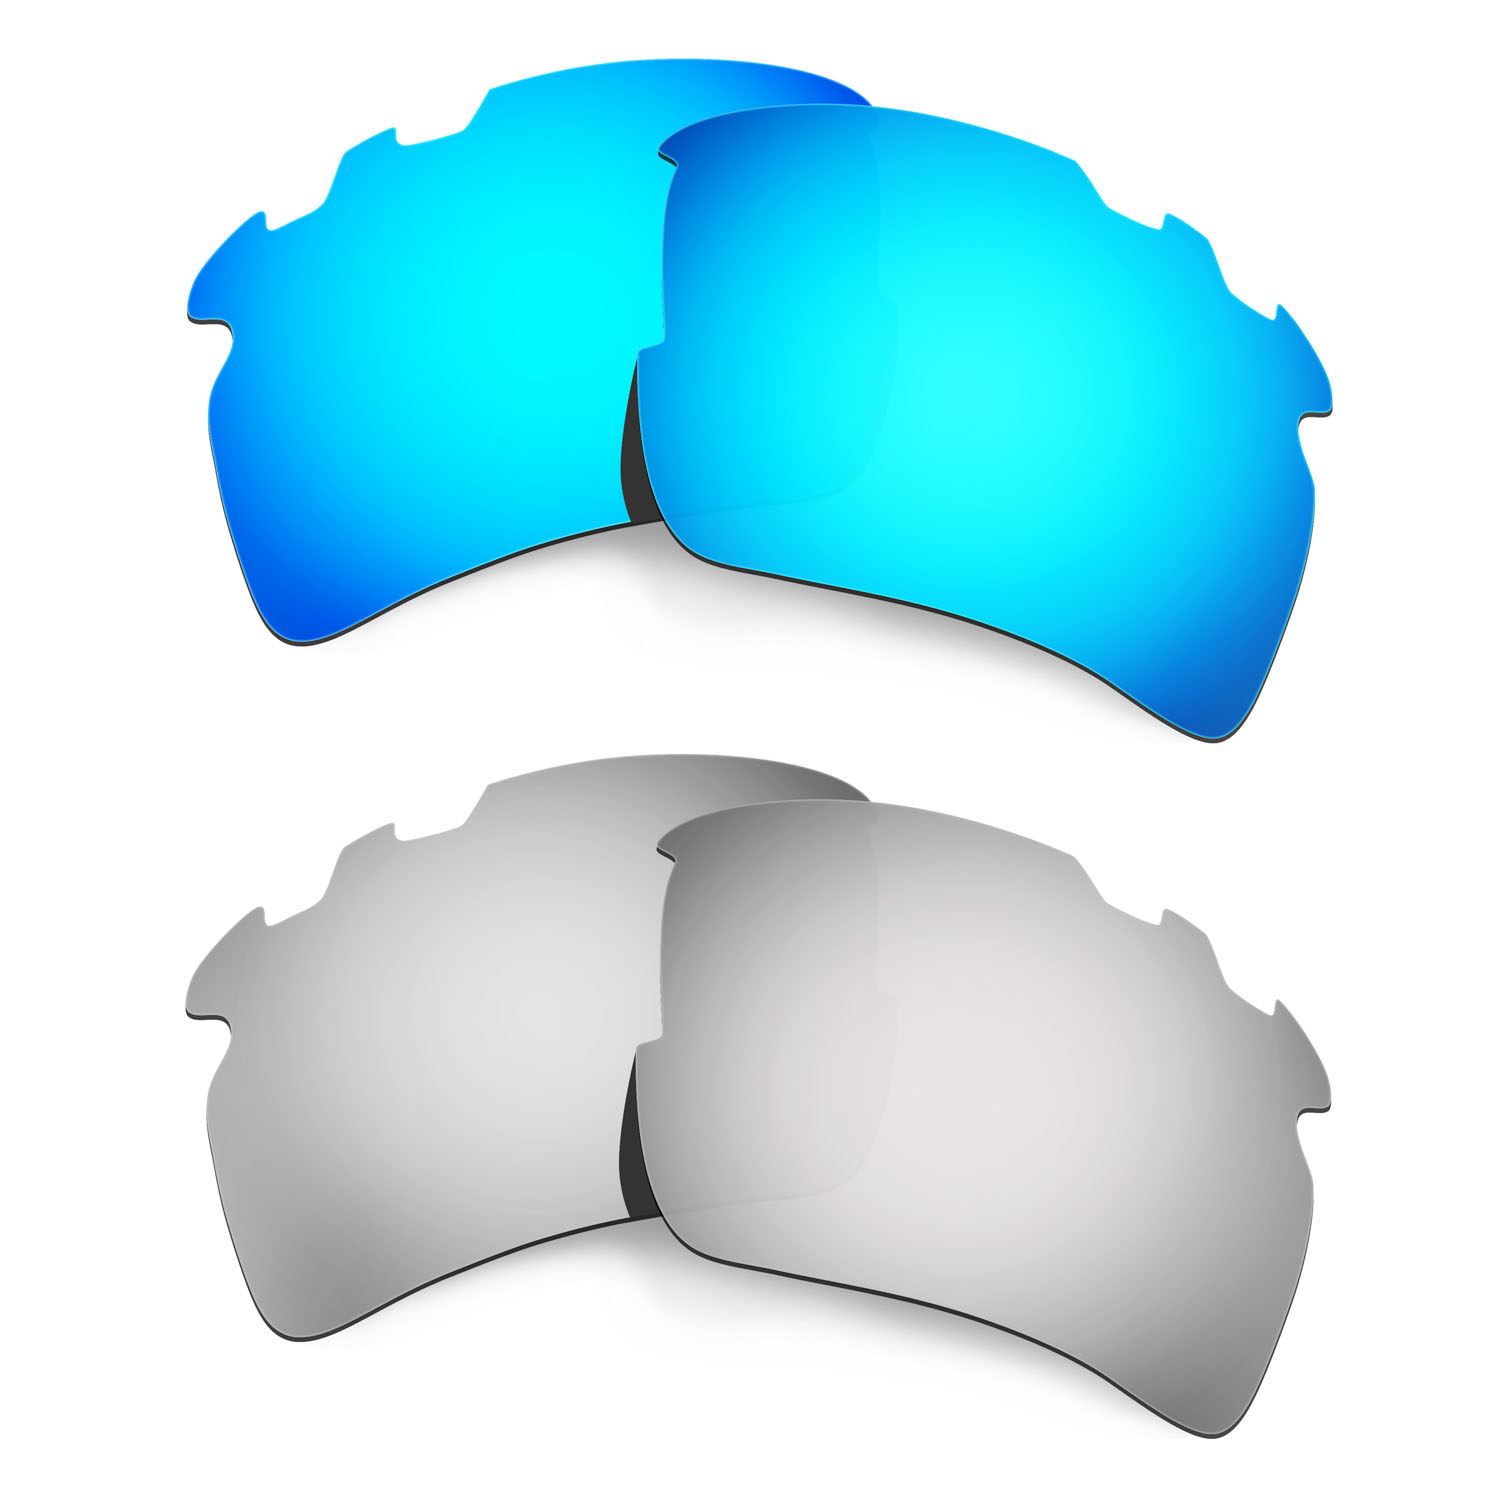 HKUCO For Flak 2.0 XL-Vented Sunglasses Polarized Replacement Lenses 2 Pairs Blue & Silver